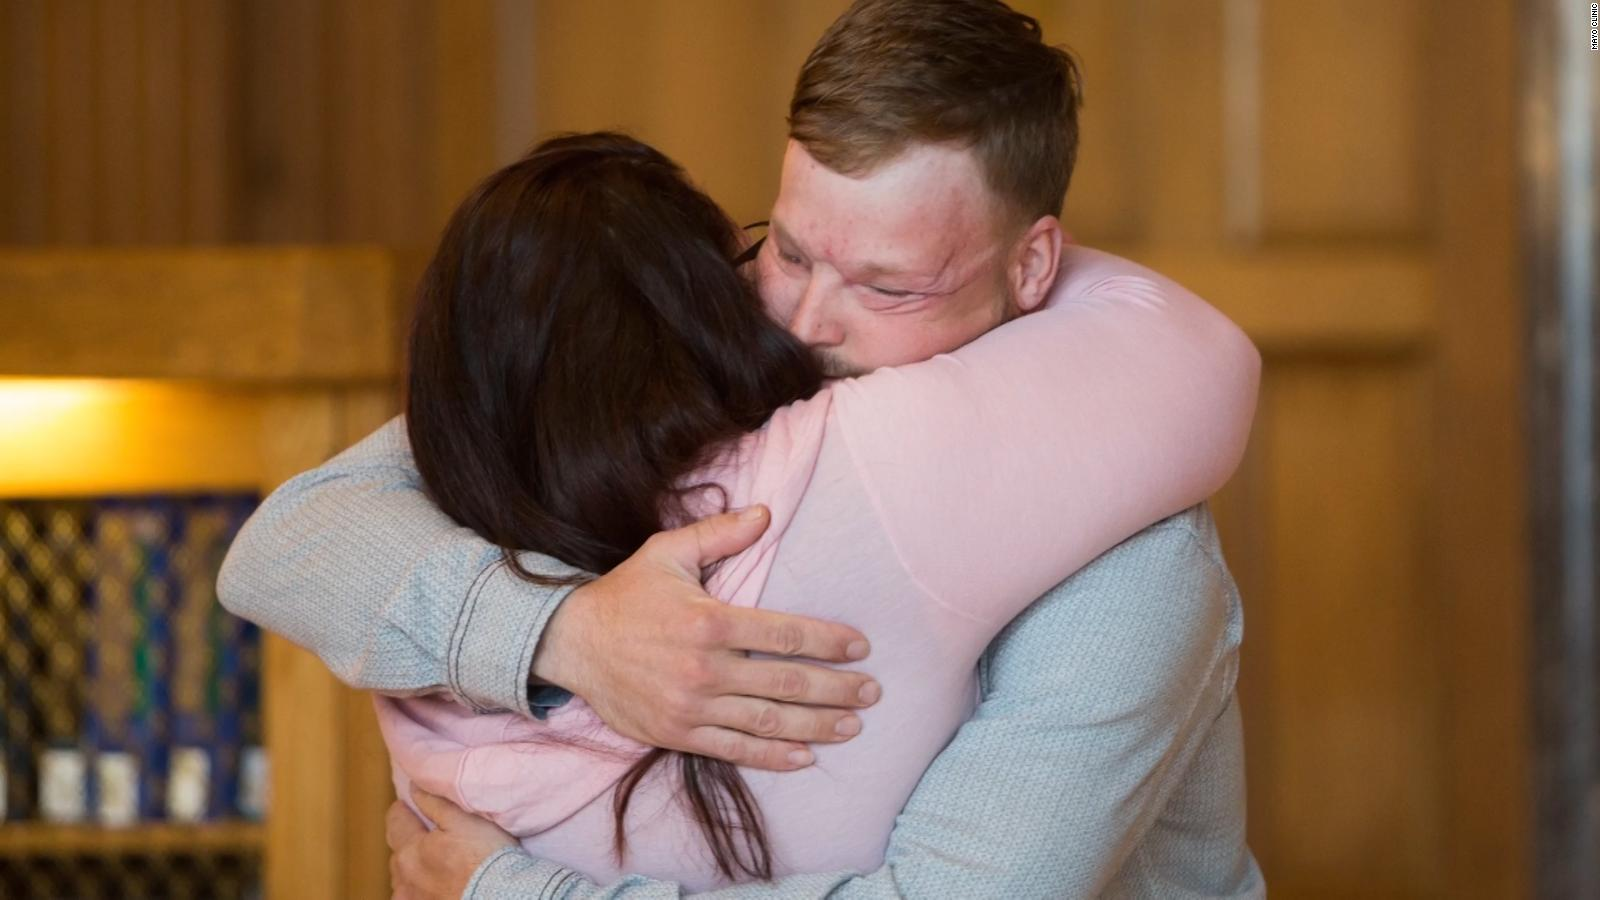 Face transplant recipient meets donor's family